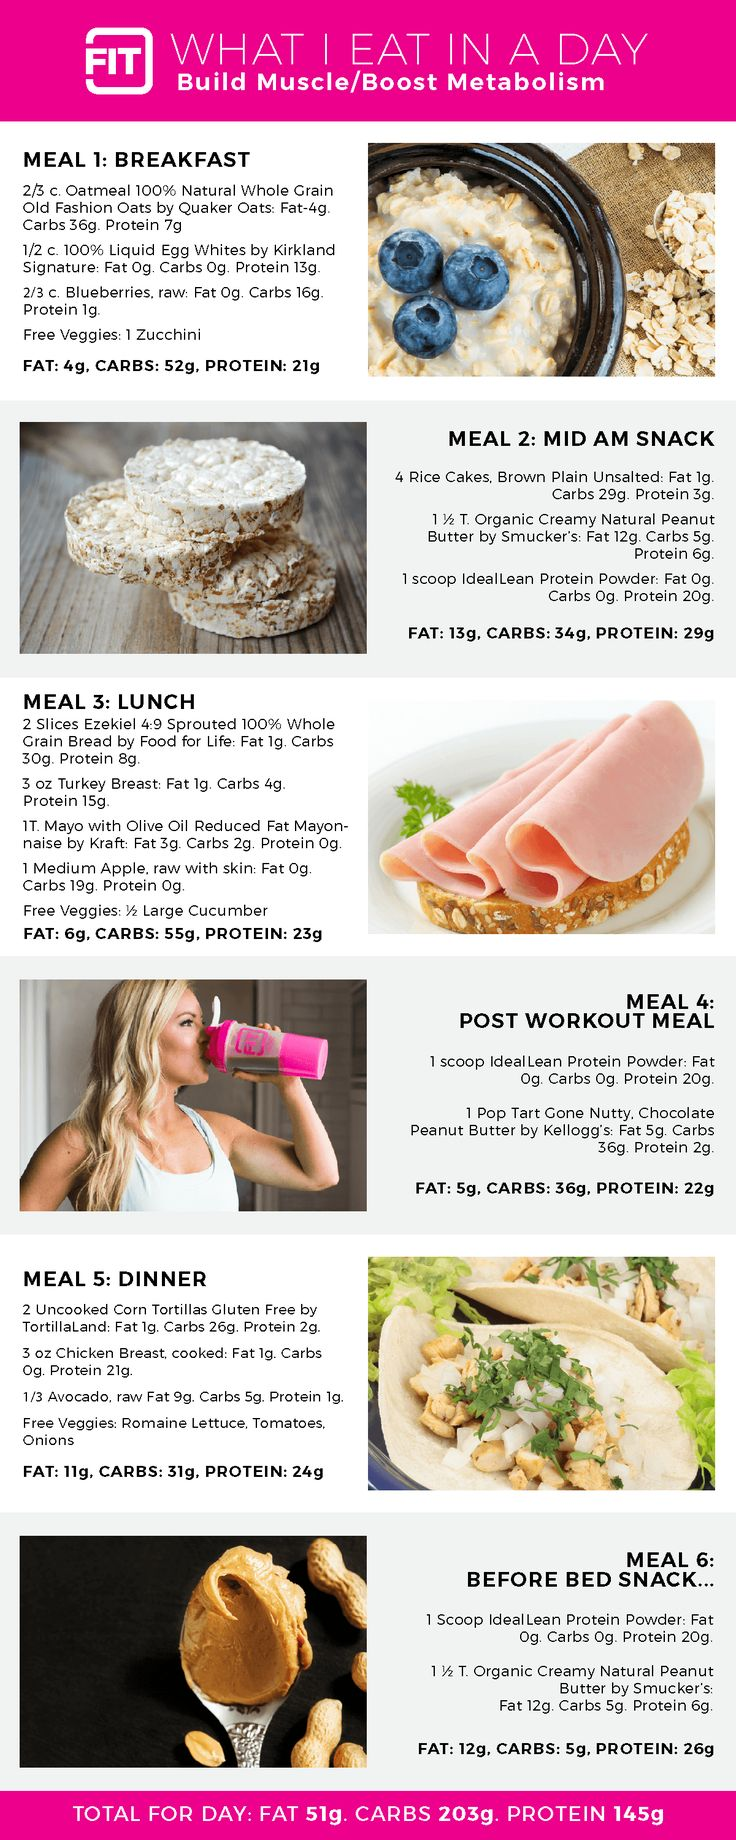 this is an example of what Trainer Lindsey eats in a day for maintaining